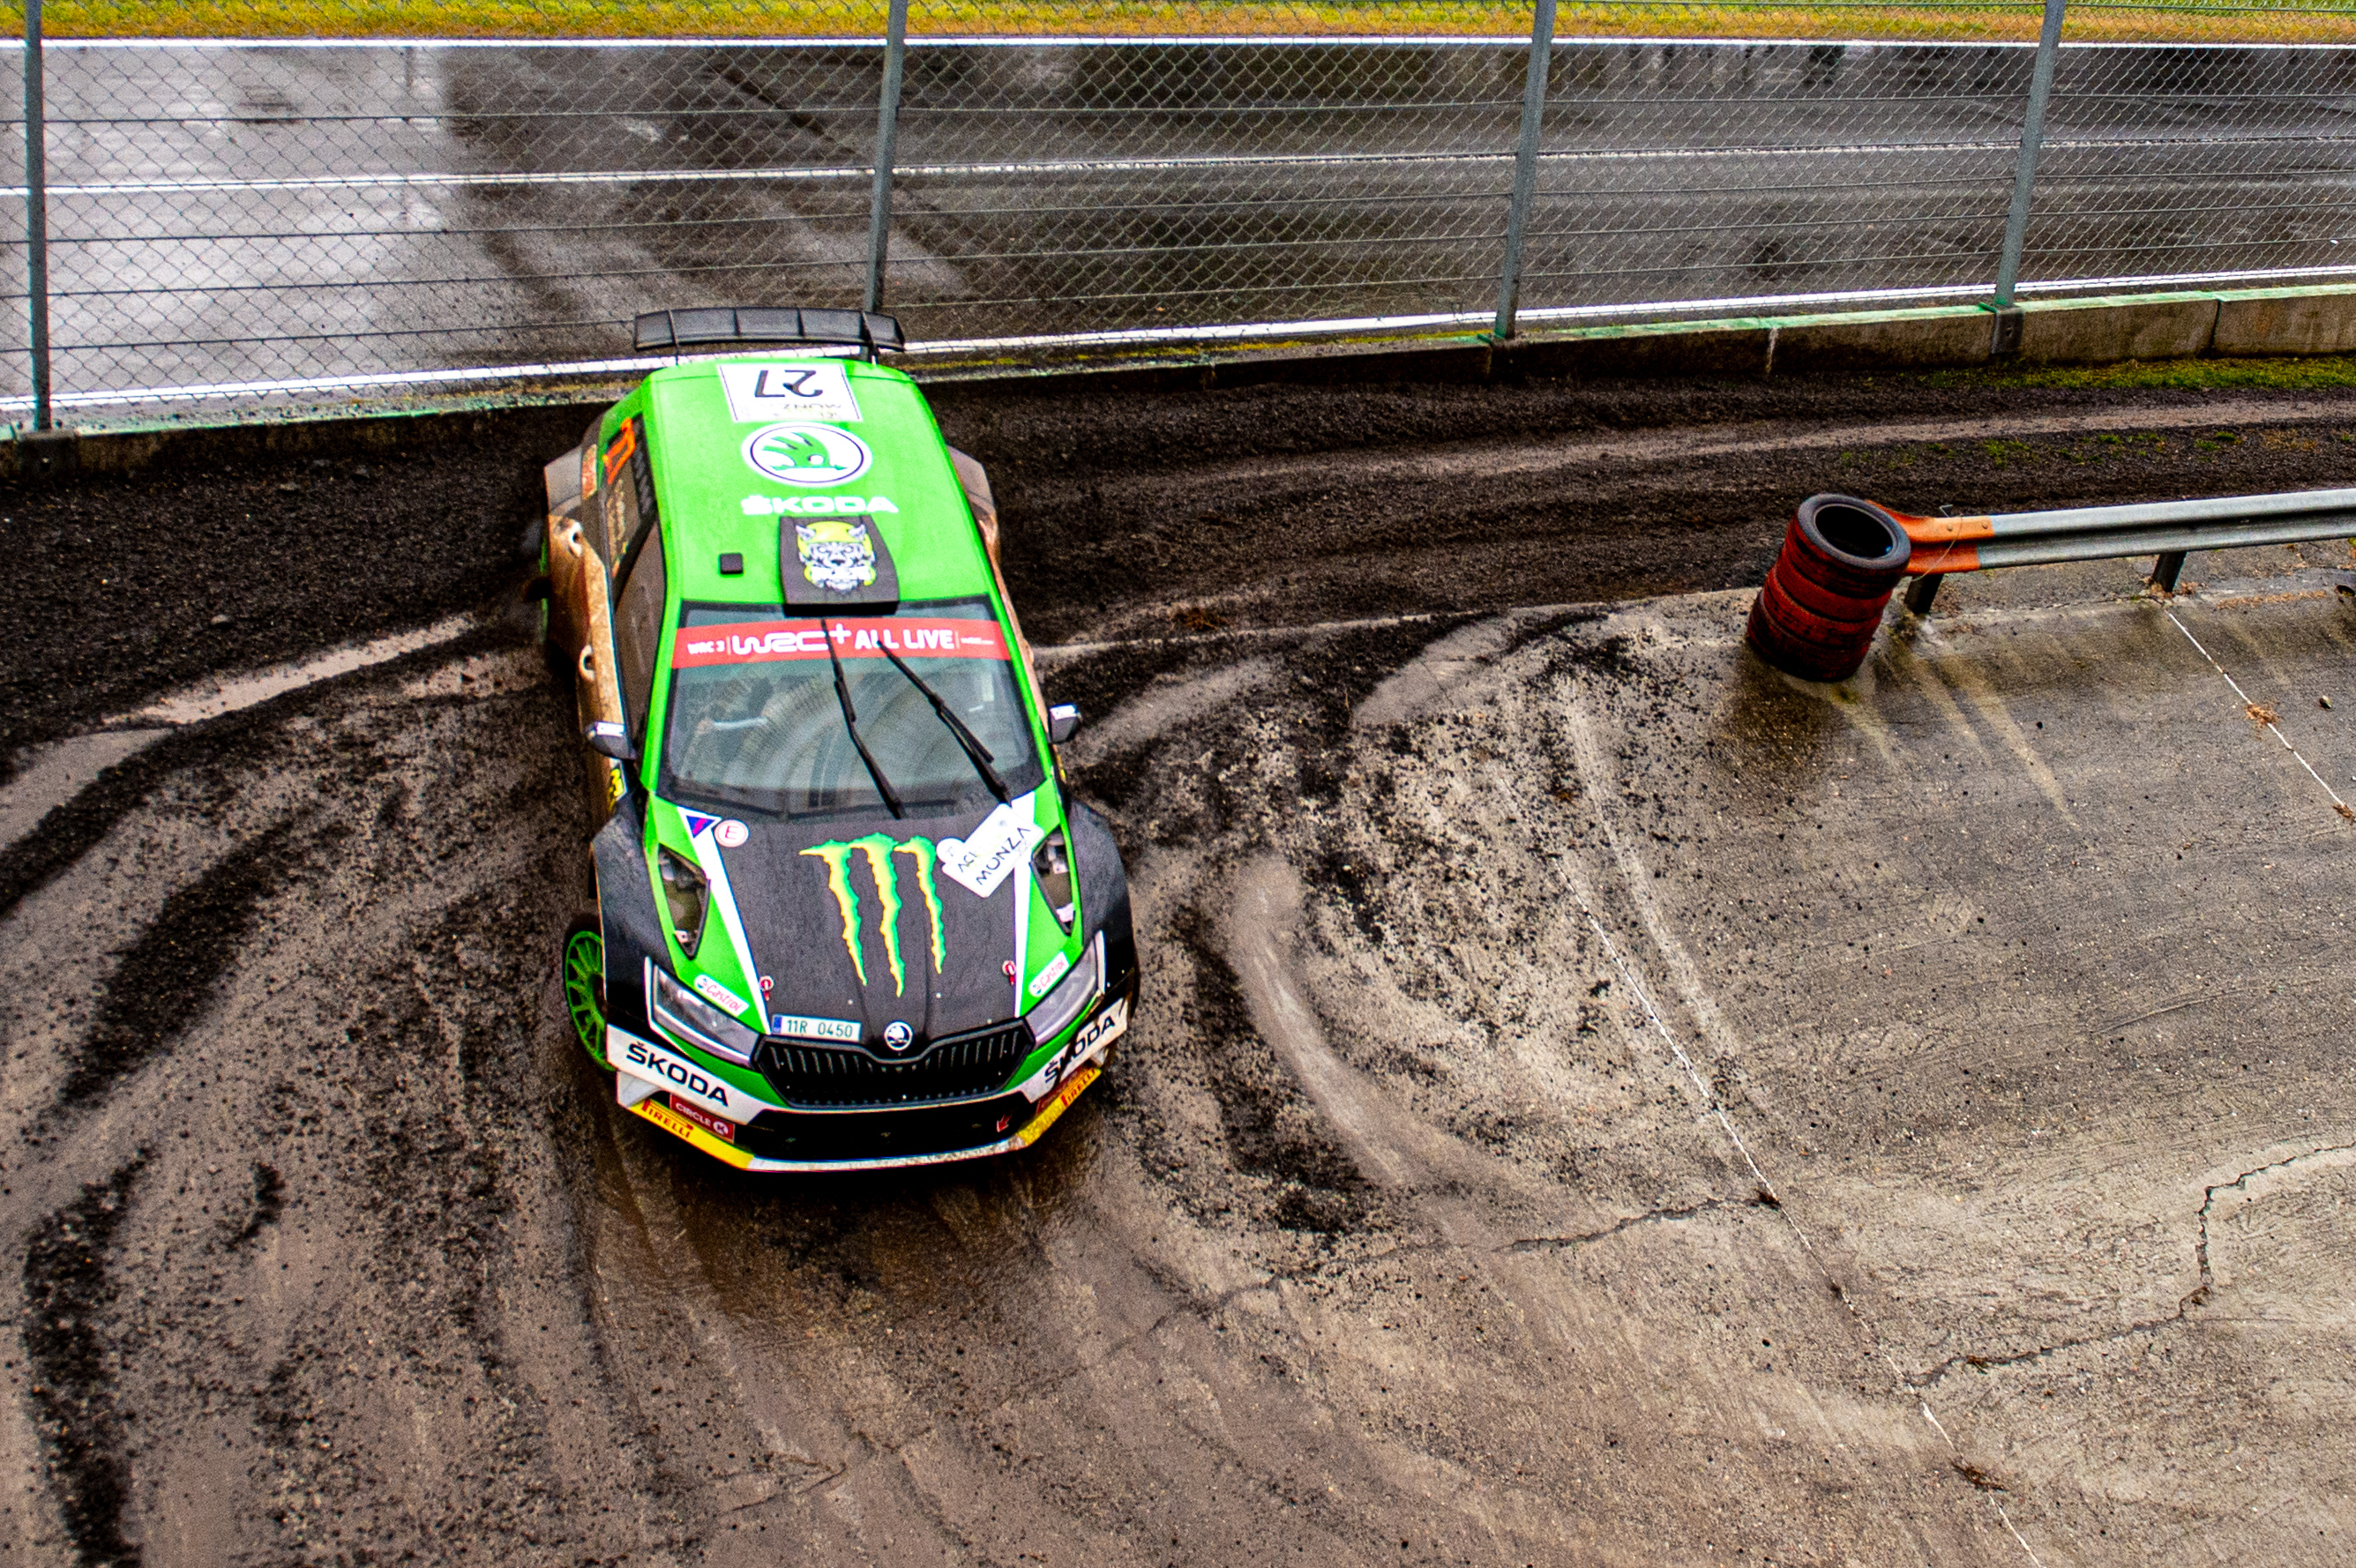 ACI Rally Monza: Clever tactics pays off as SKODA crews lead WRC2 and WRC3 after first leg - Image 2